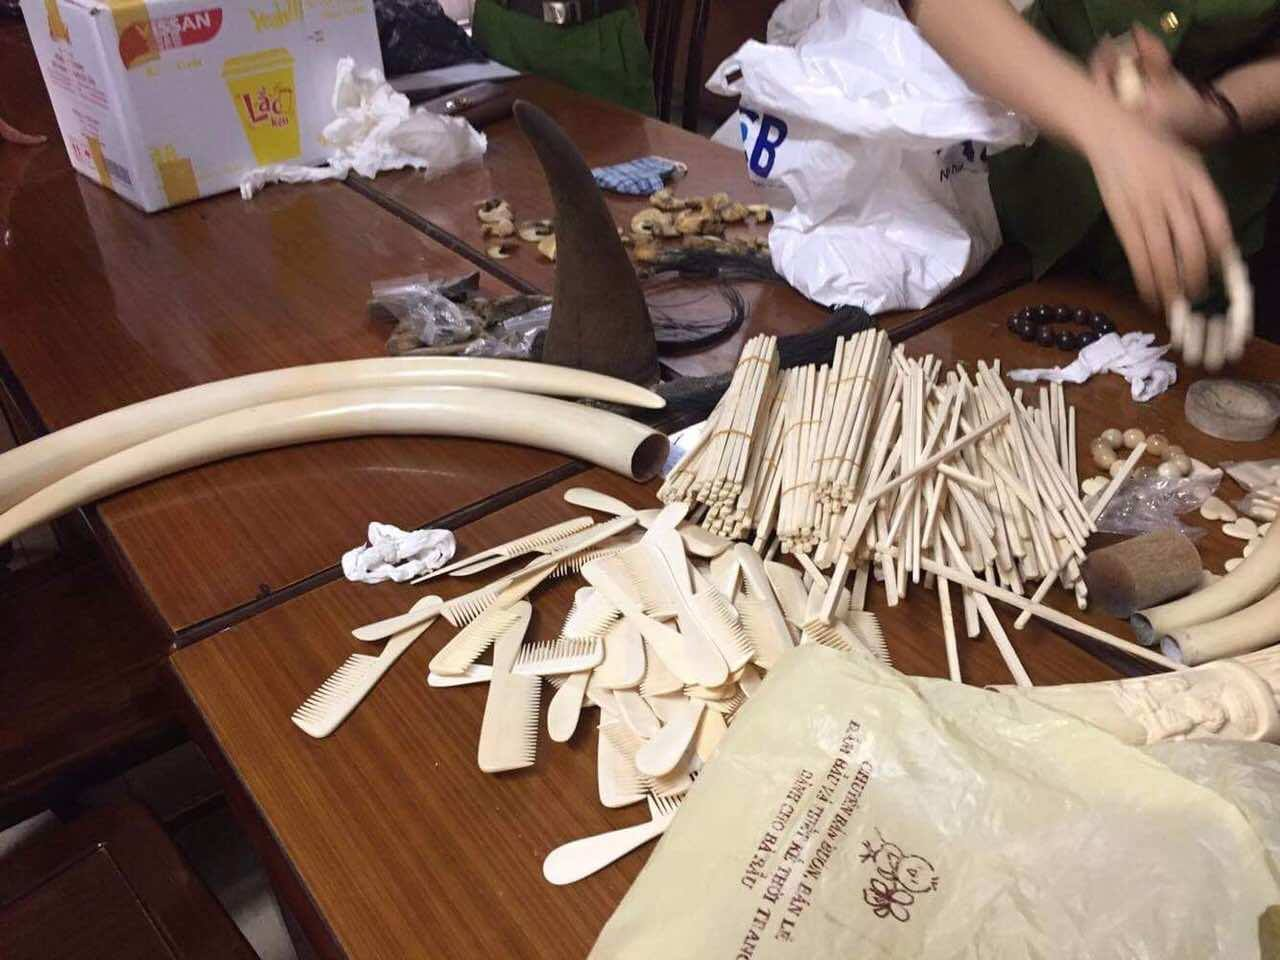 Ivory and other wildlife products recovered in Vietnam wildlife kingpin bust